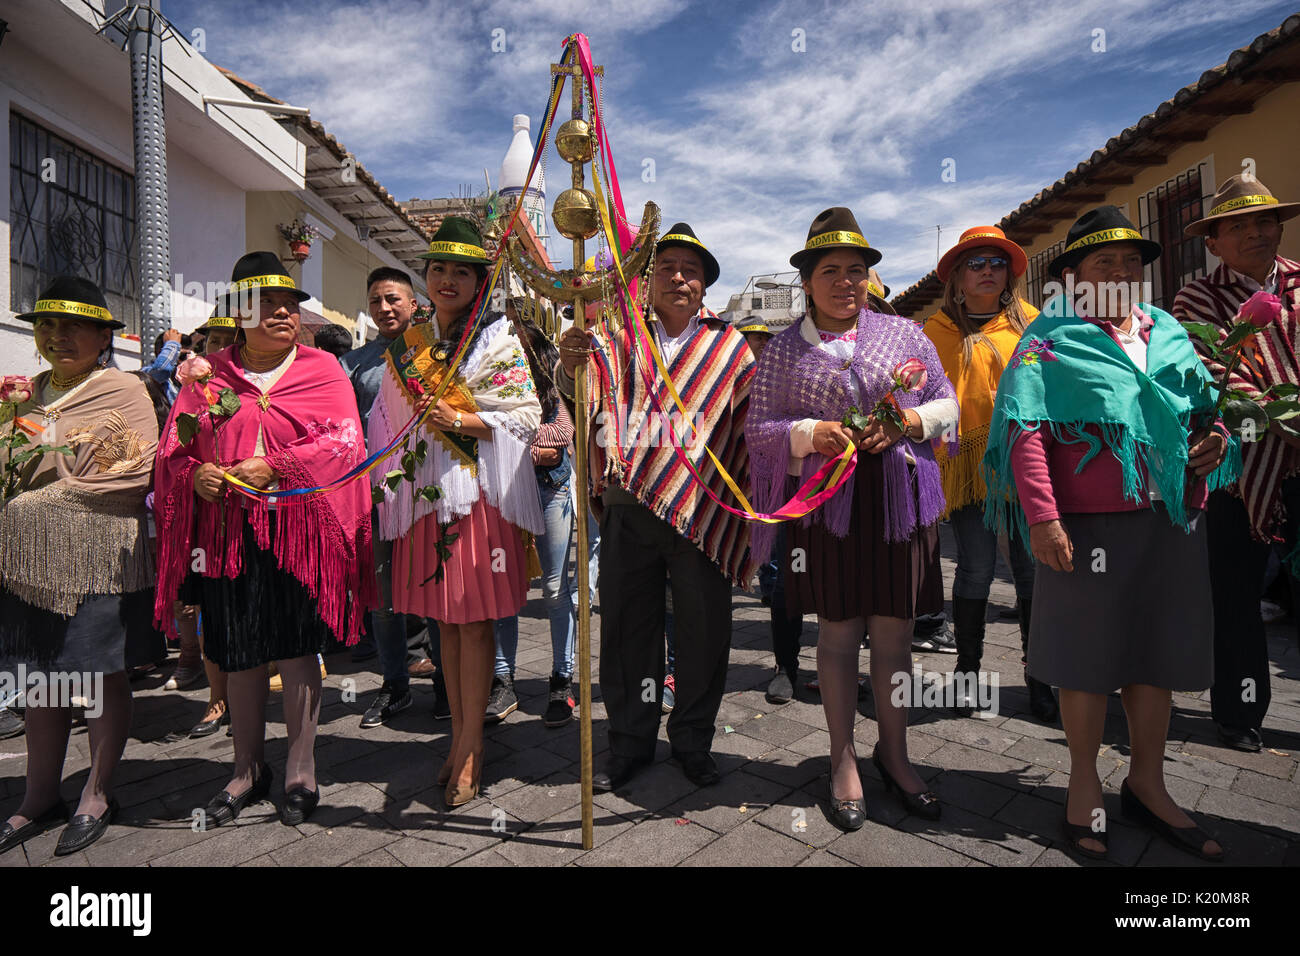 June 17, 2017 Pujili, Ecuador: indigenous kichwa people in traditional clothes at the Corpus Christi parade - Stock Image